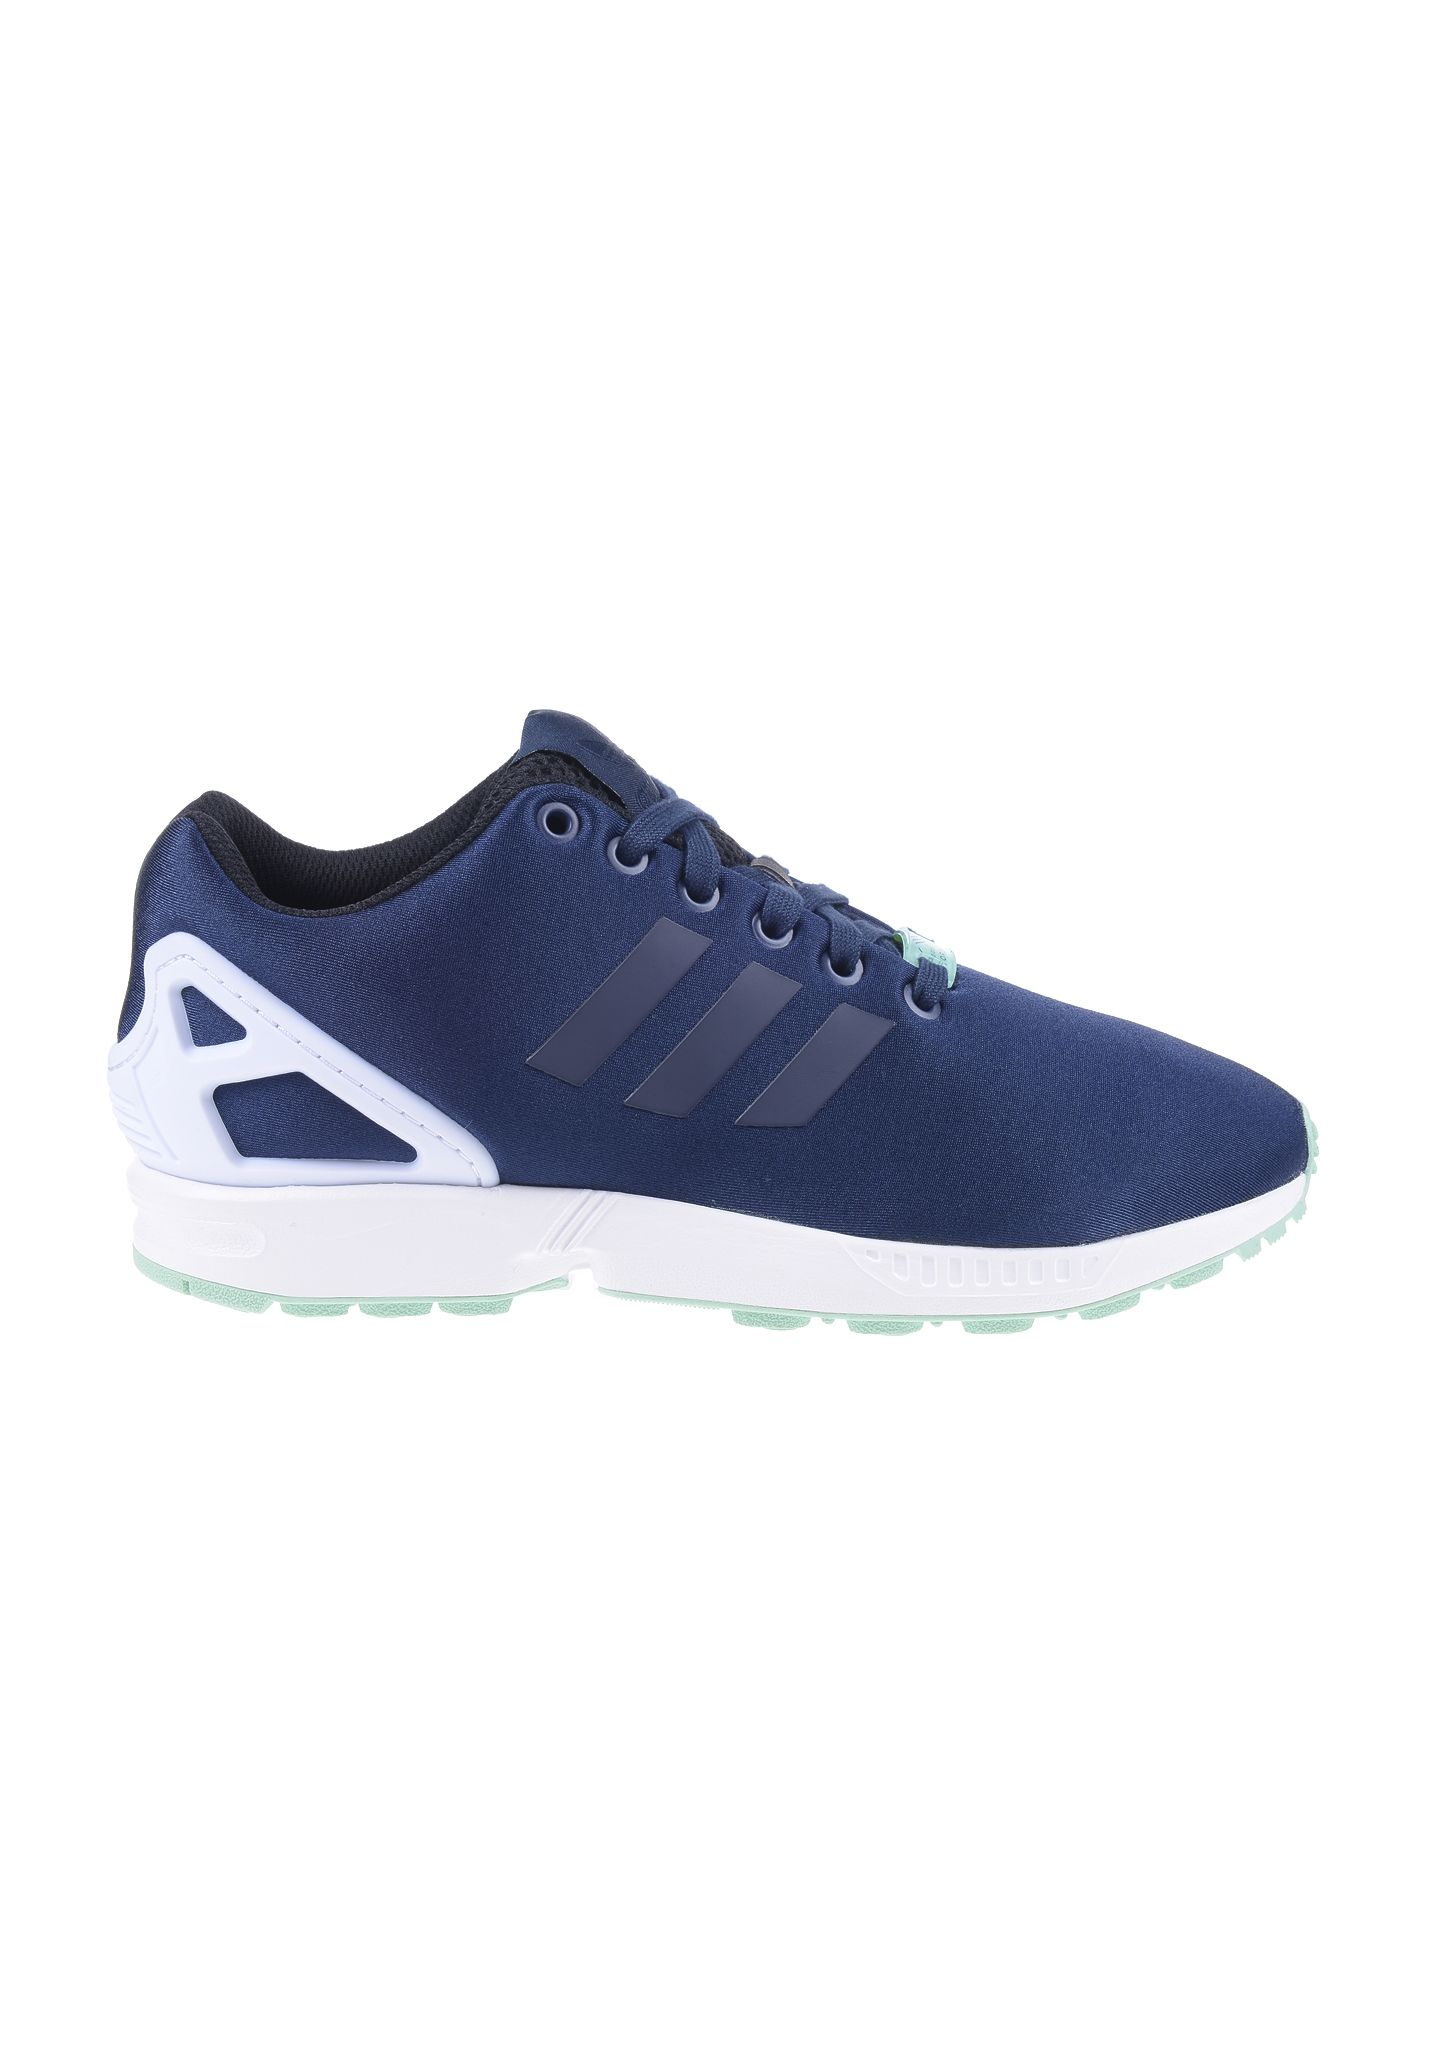 adidas zx flux blau triathlon. Black Bedroom Furniture Sets. Home Design Ideas